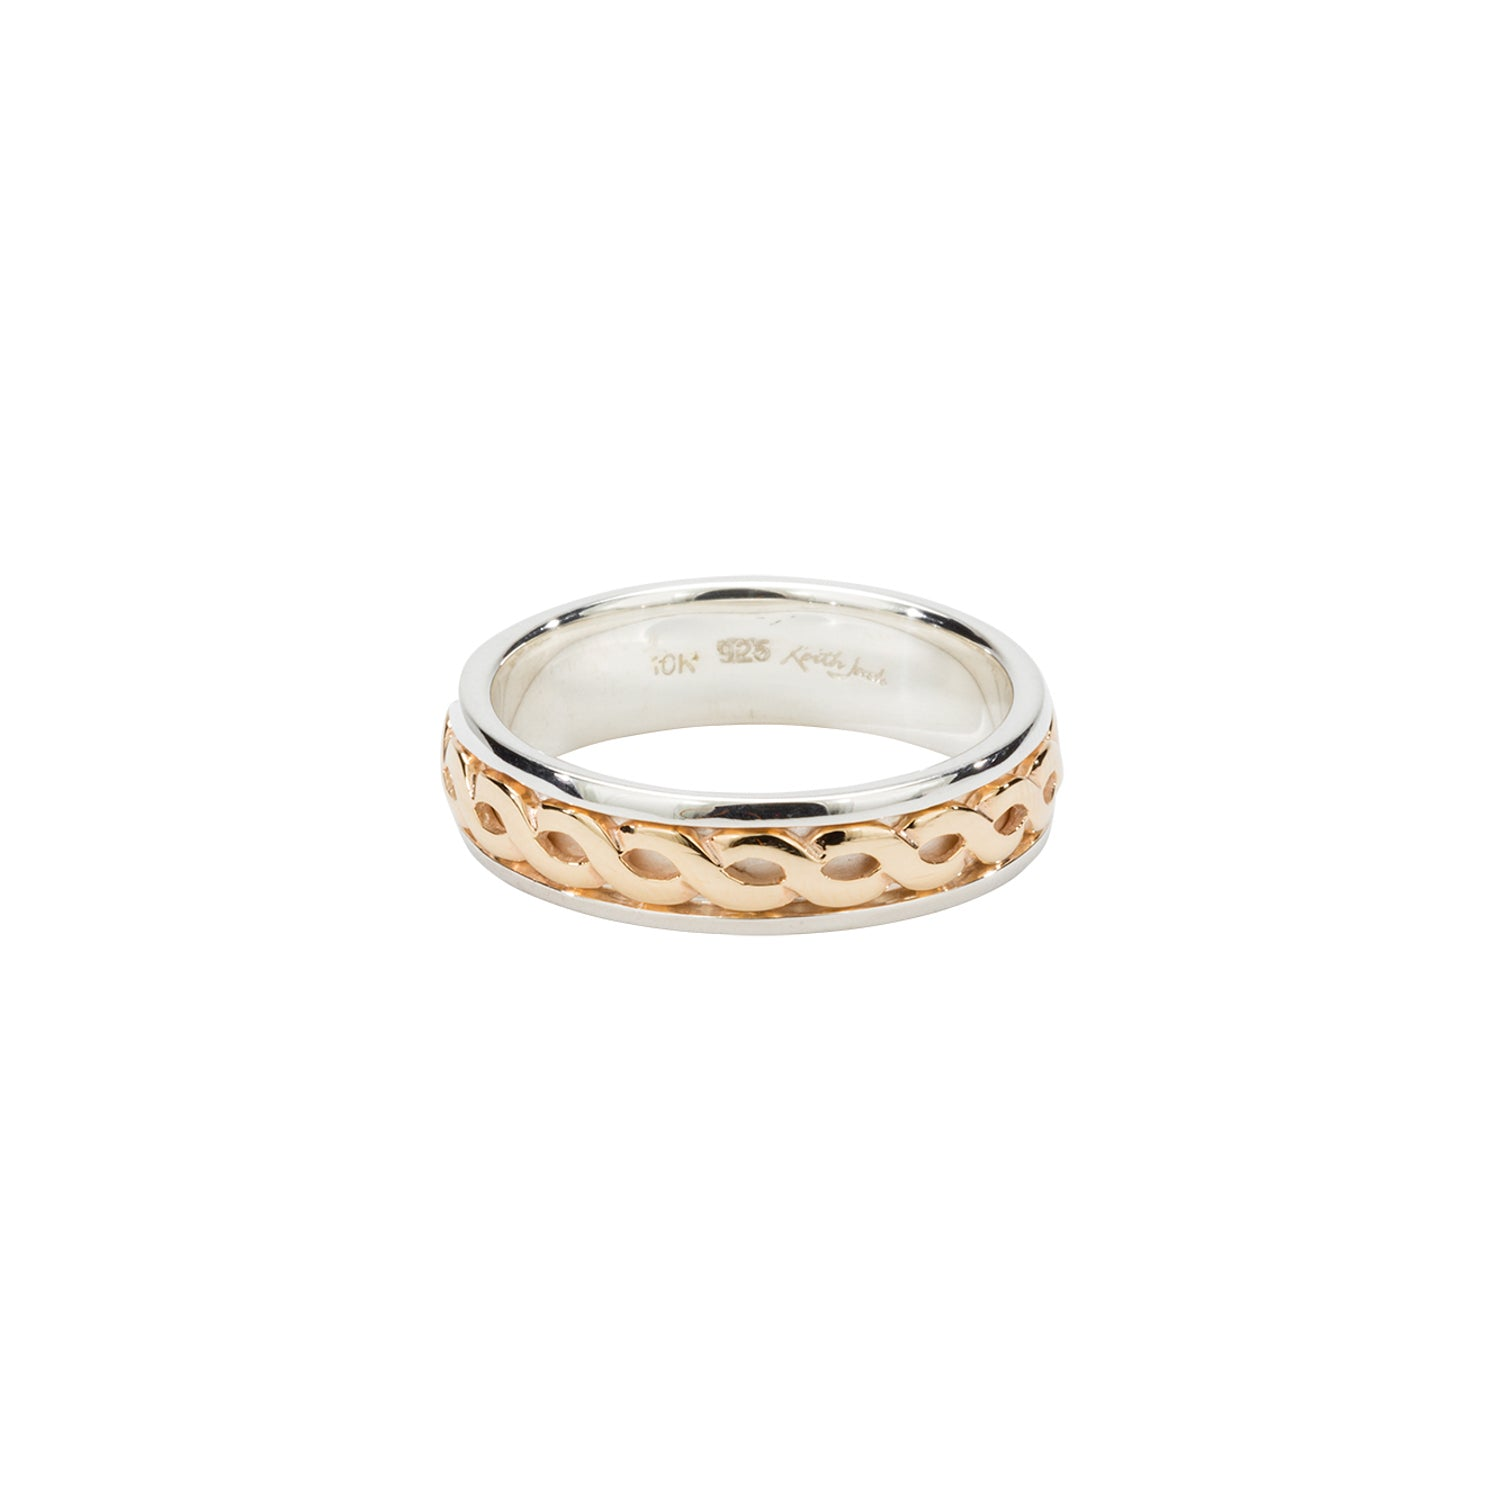 "Ring Bands 10k Celtic Weave Knot ""Harrow"" Ring from welch and company jewelers near syracuse ny"